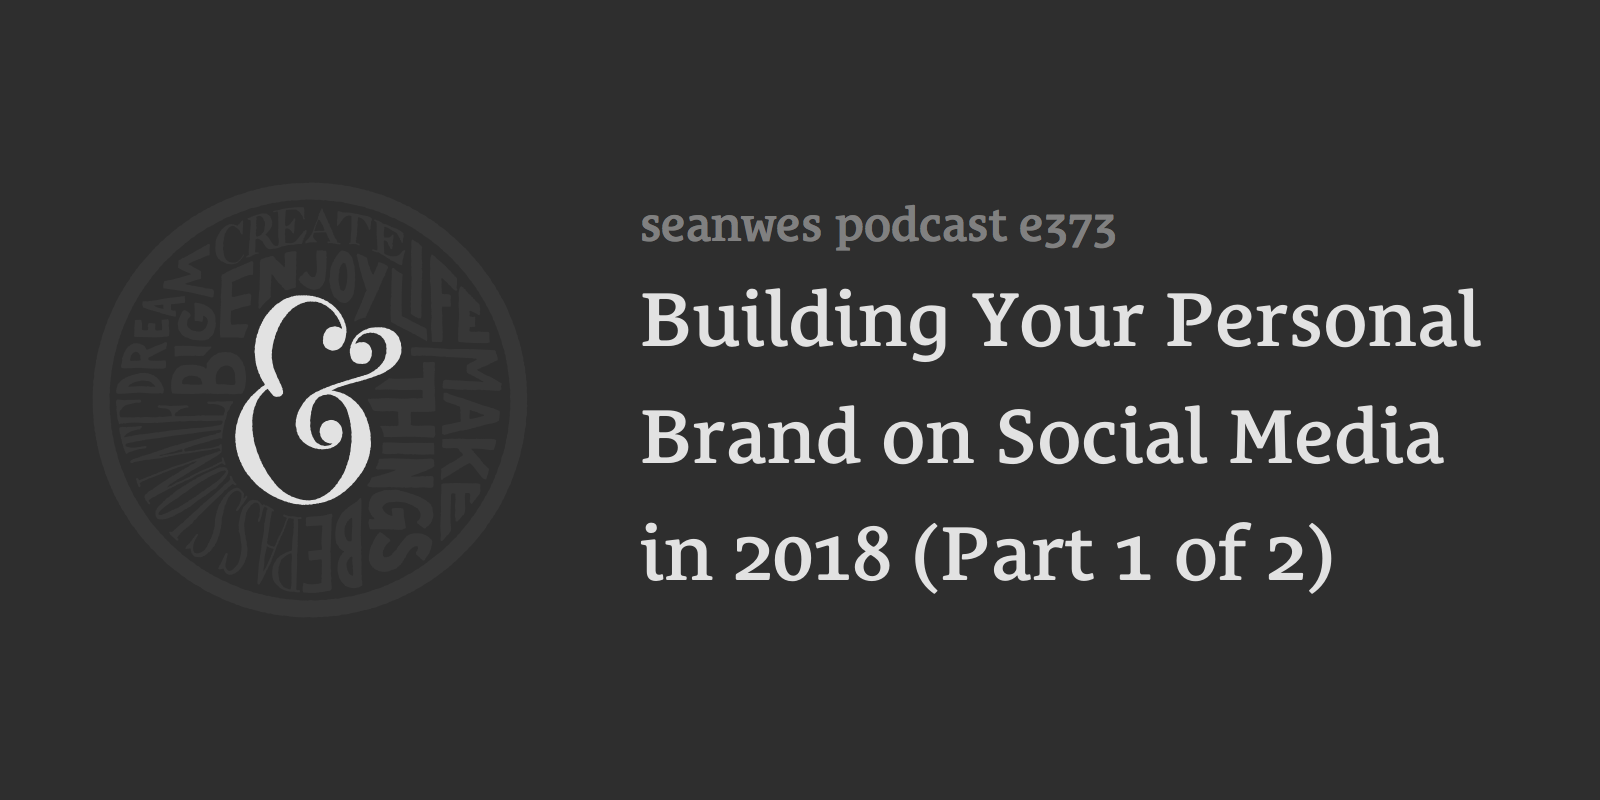 Building Your Personal Brand on Social Media in 2018 (Part 1 of 2)